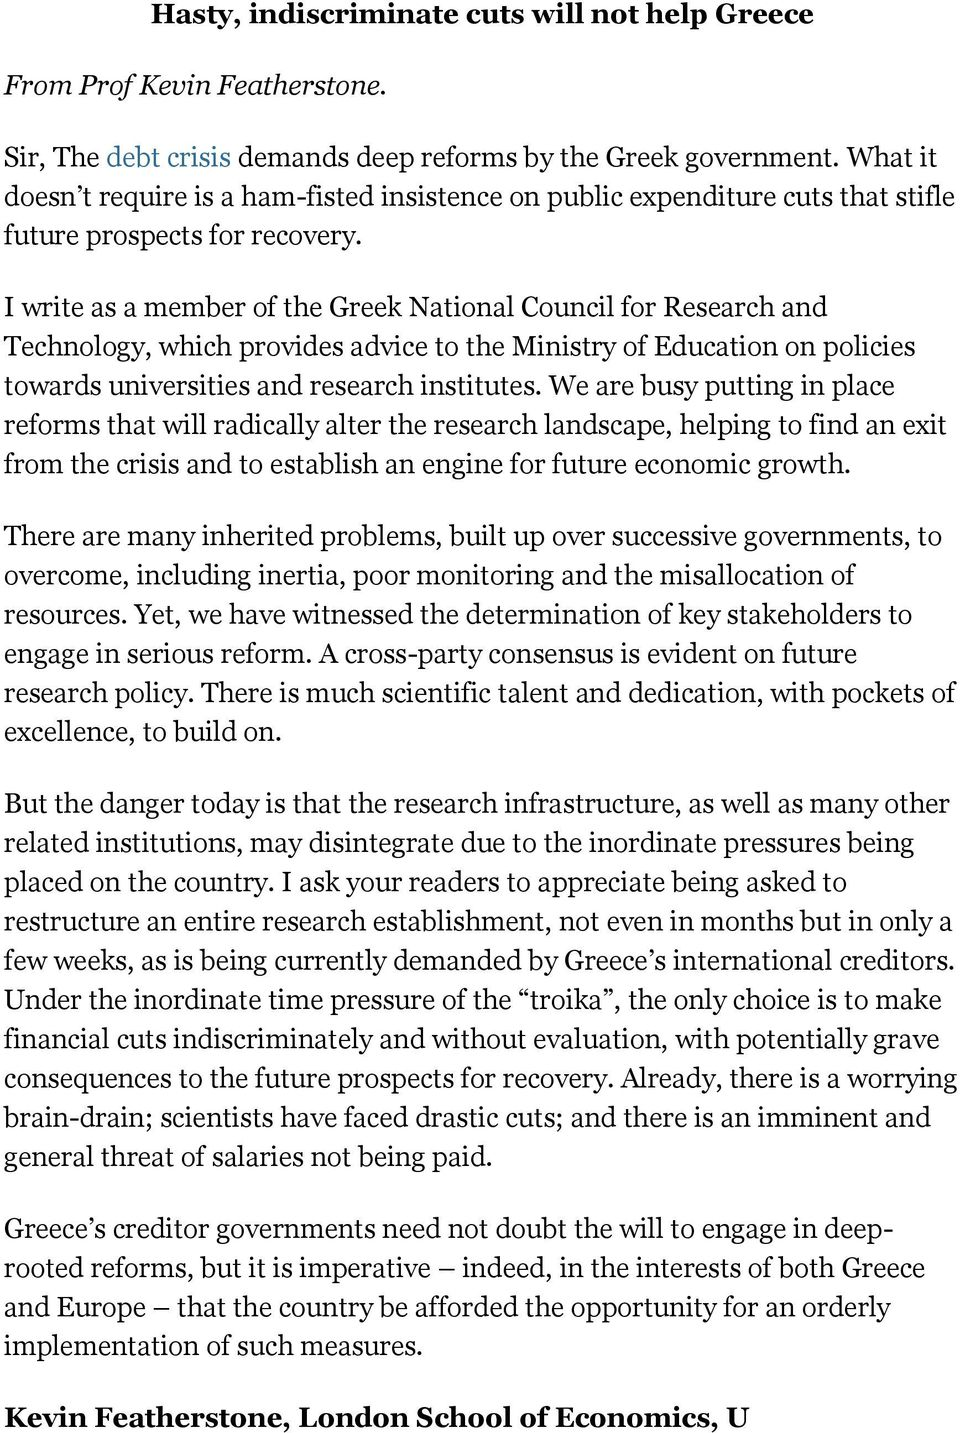 I write as a member of the Greek National Council for Research and Technology, which provides advice to the Ministry of Education on policies towards universities and research institutes.